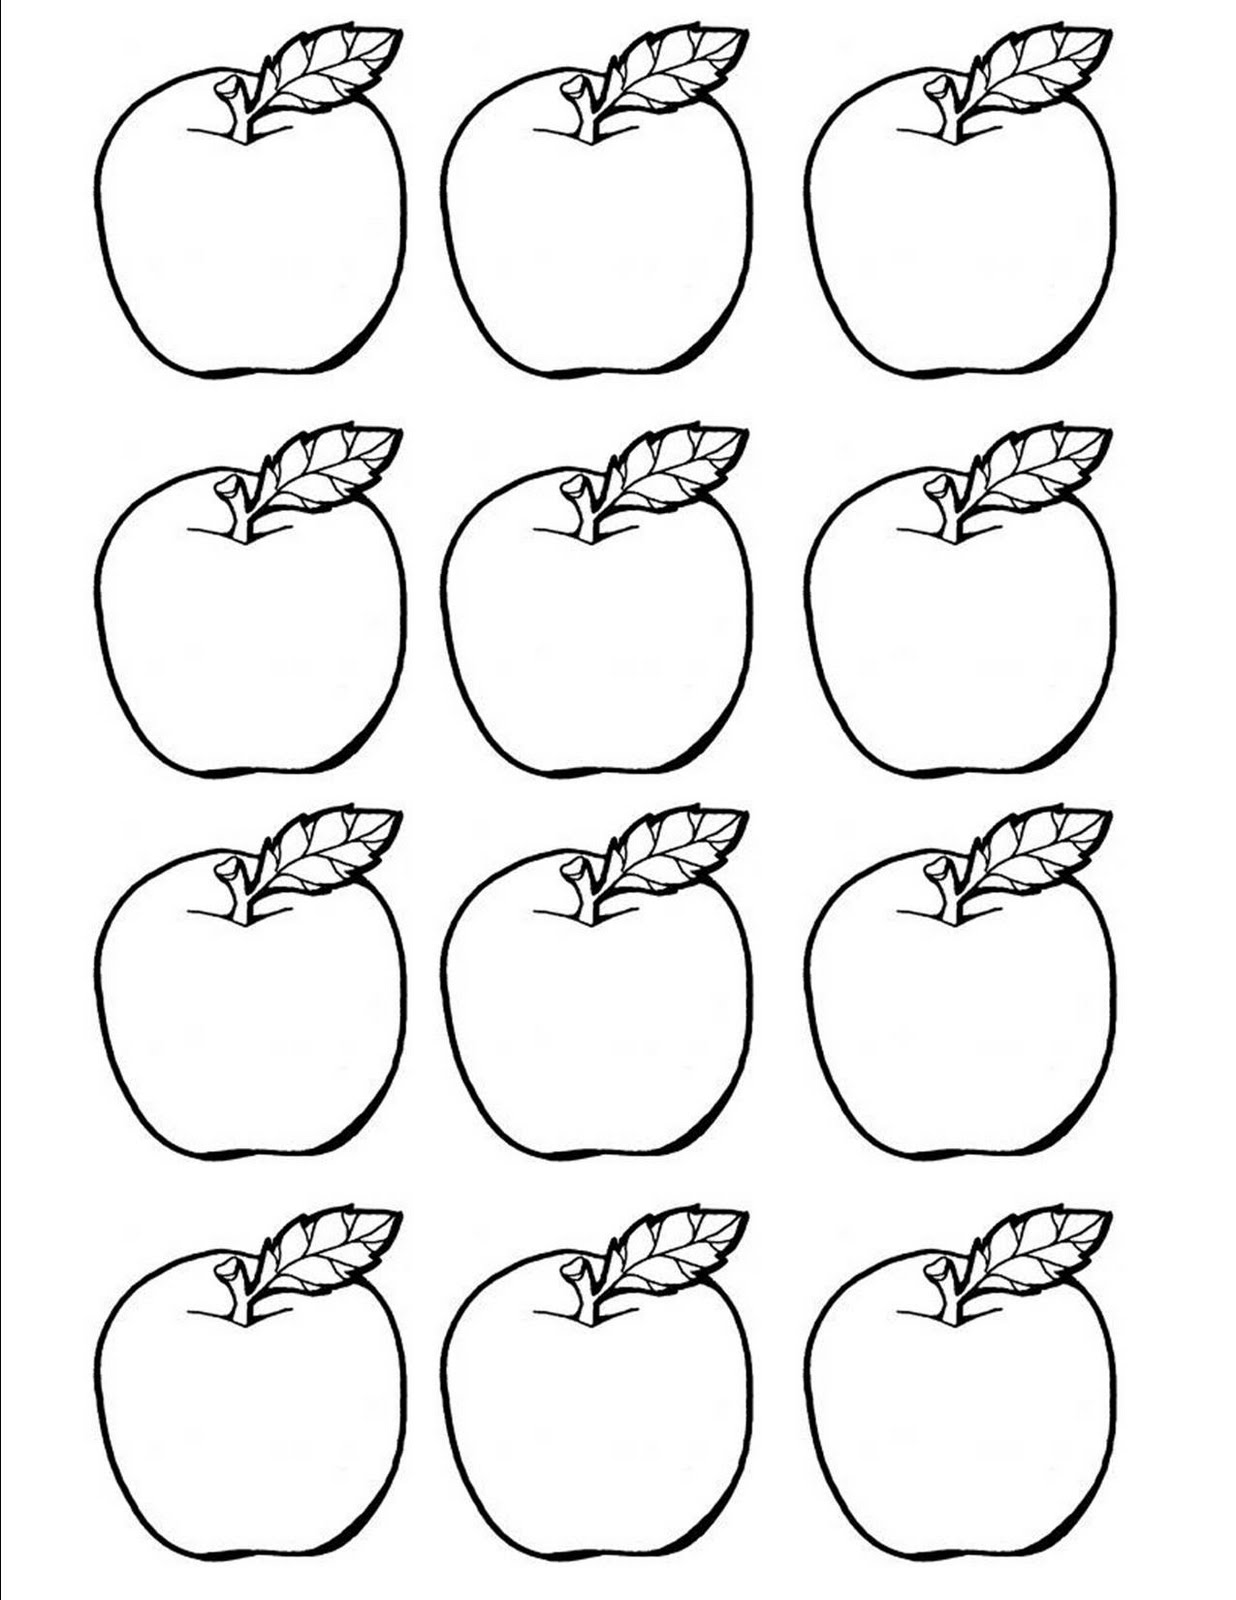 printable apple pictures free printable apple coloring pages for kids apple pictures printable